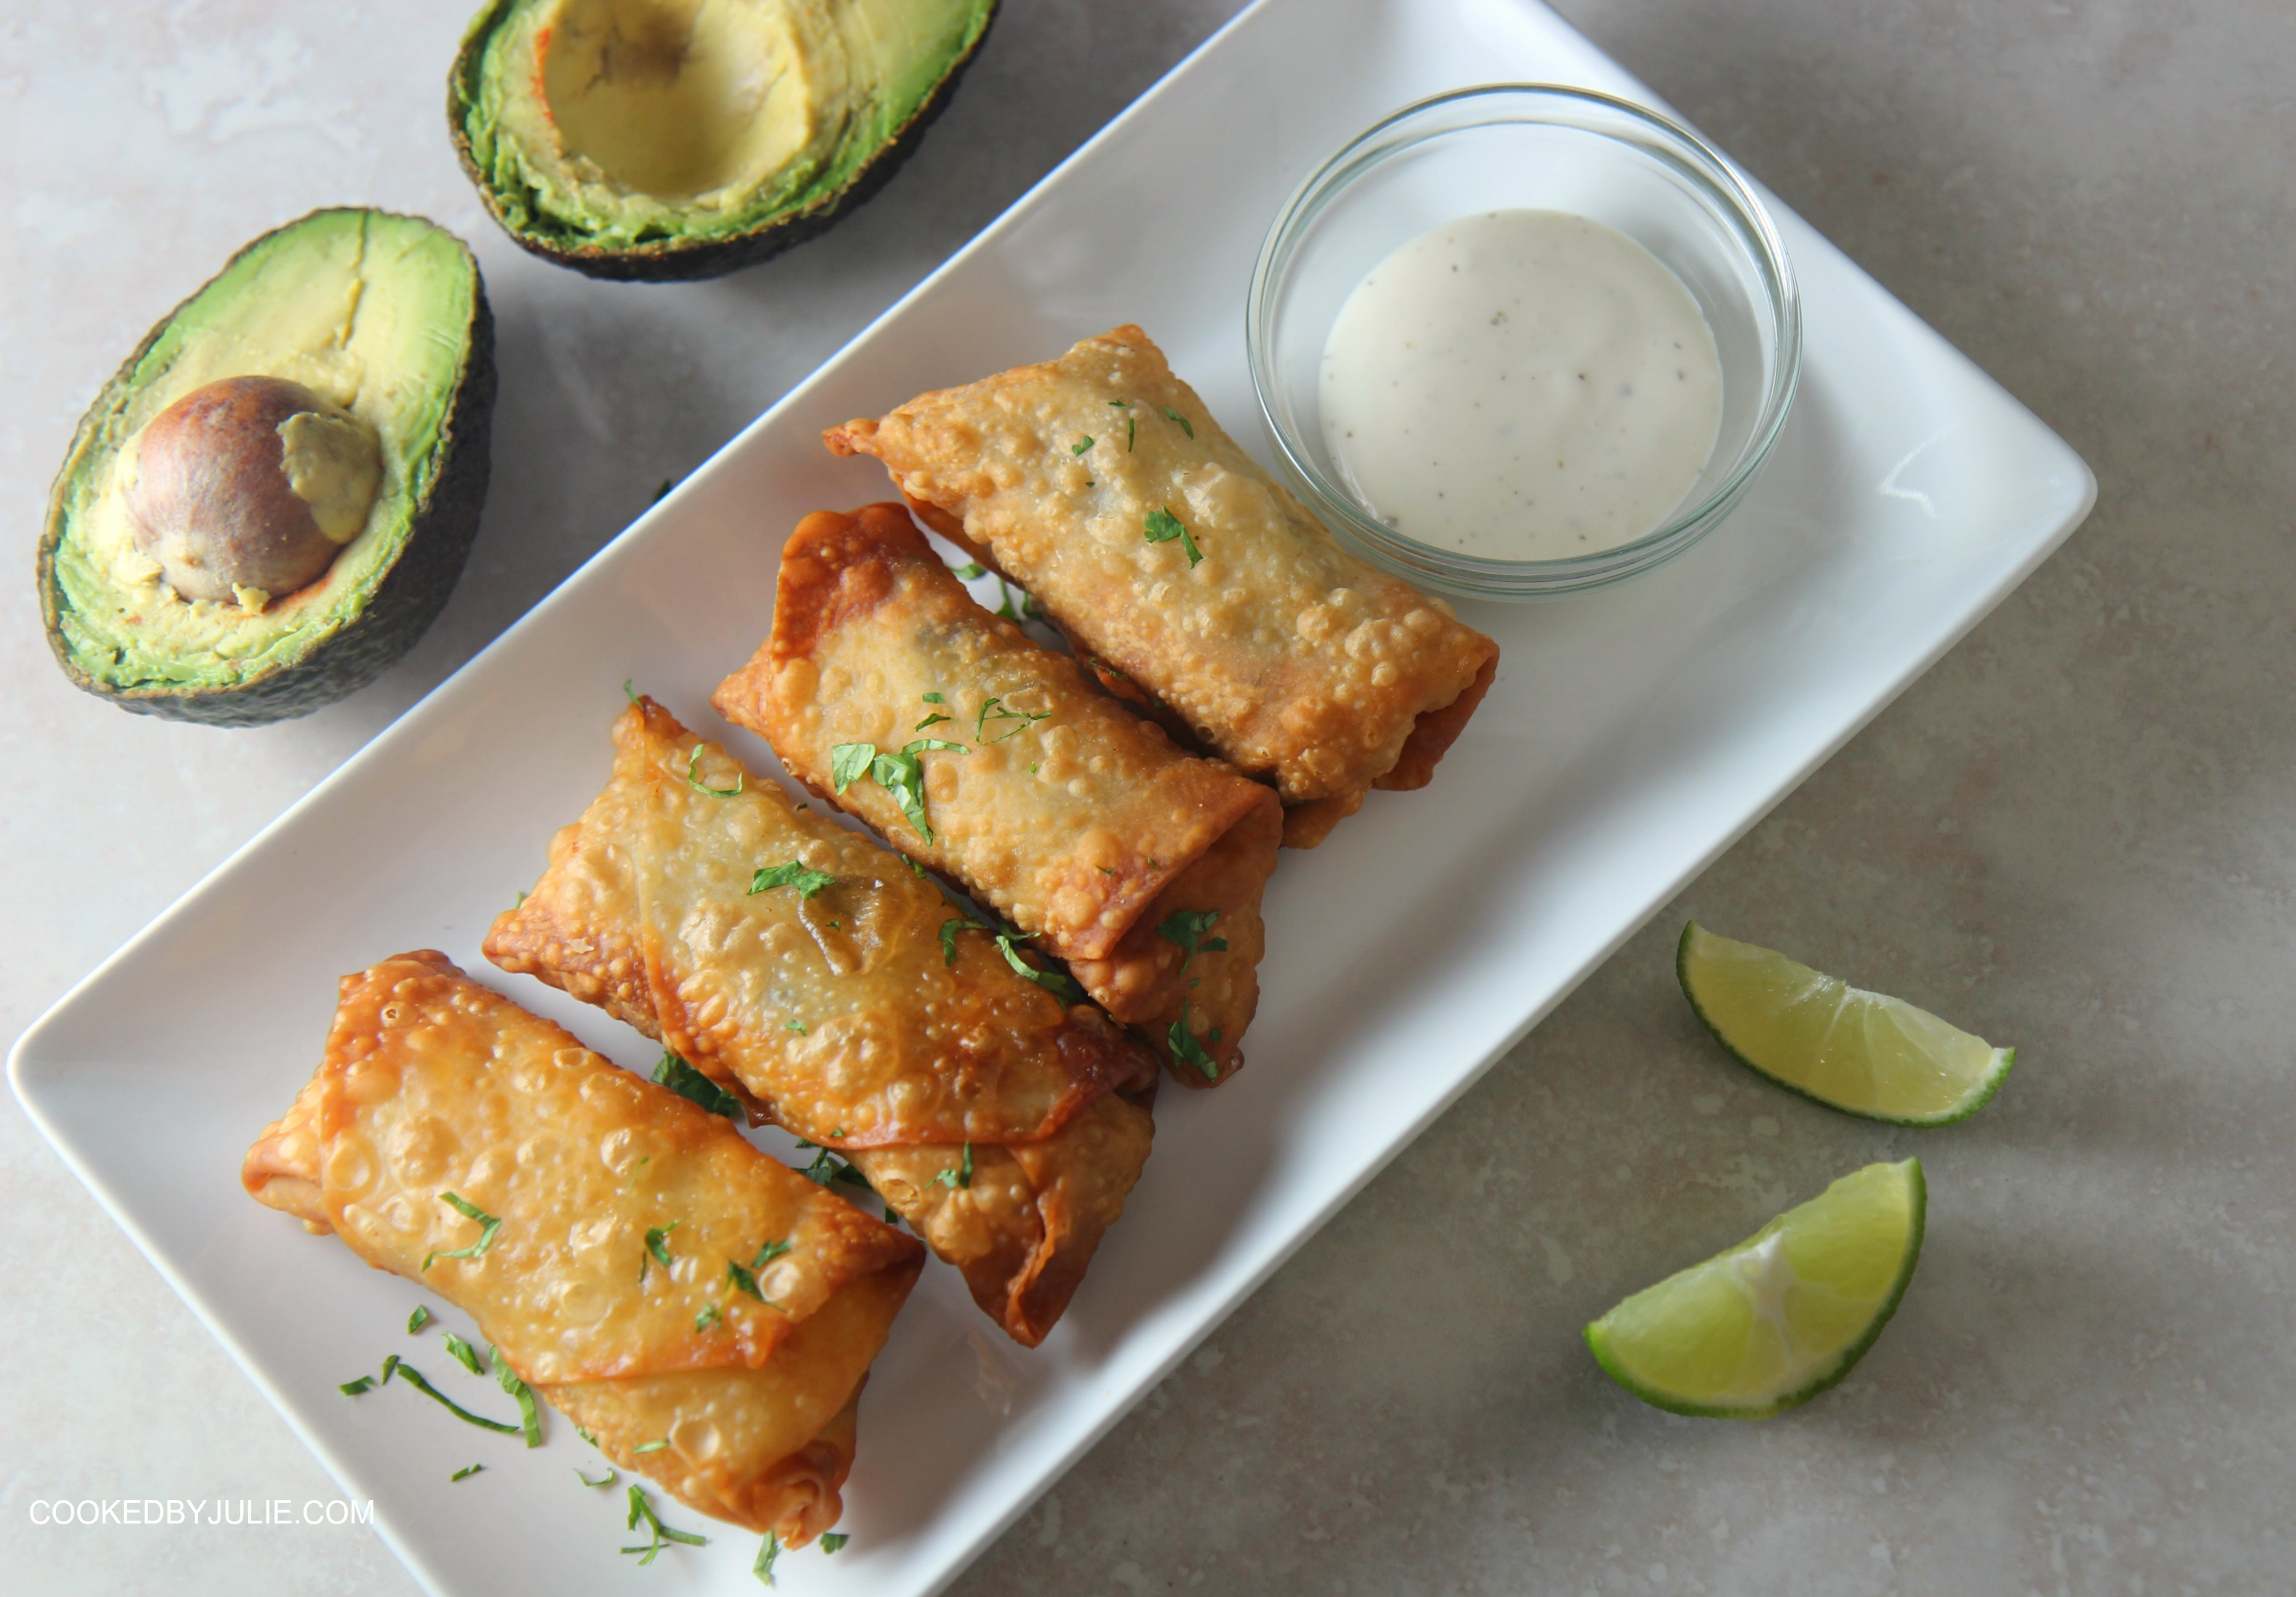 Serve these chicken avocado egg rolls with some ranch dipping sauce and lime wedges.